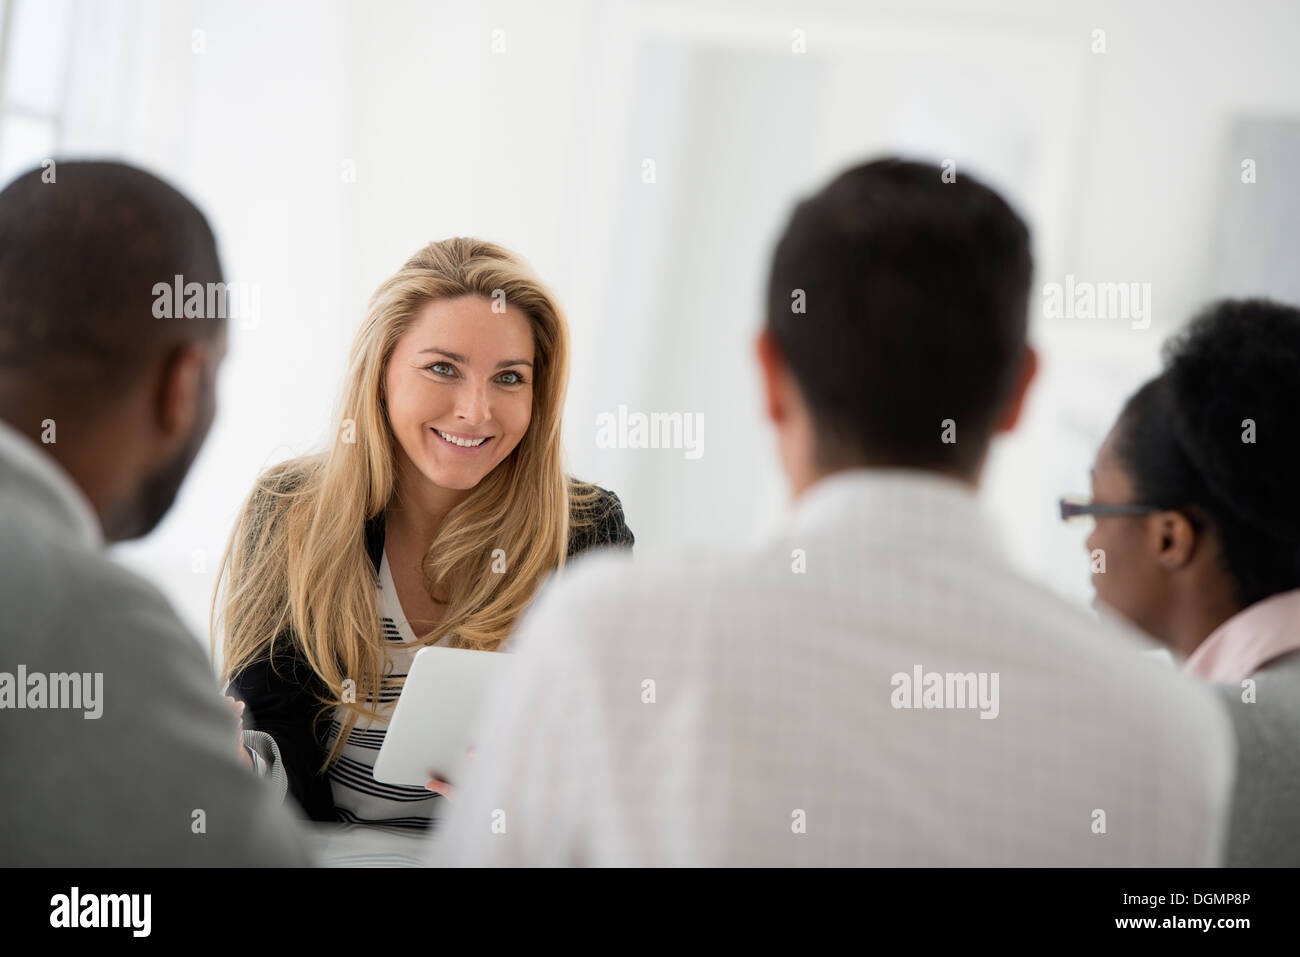 Office interior. A group of four people, two men and two women, seated around a table. Business meeting. - Stock Image